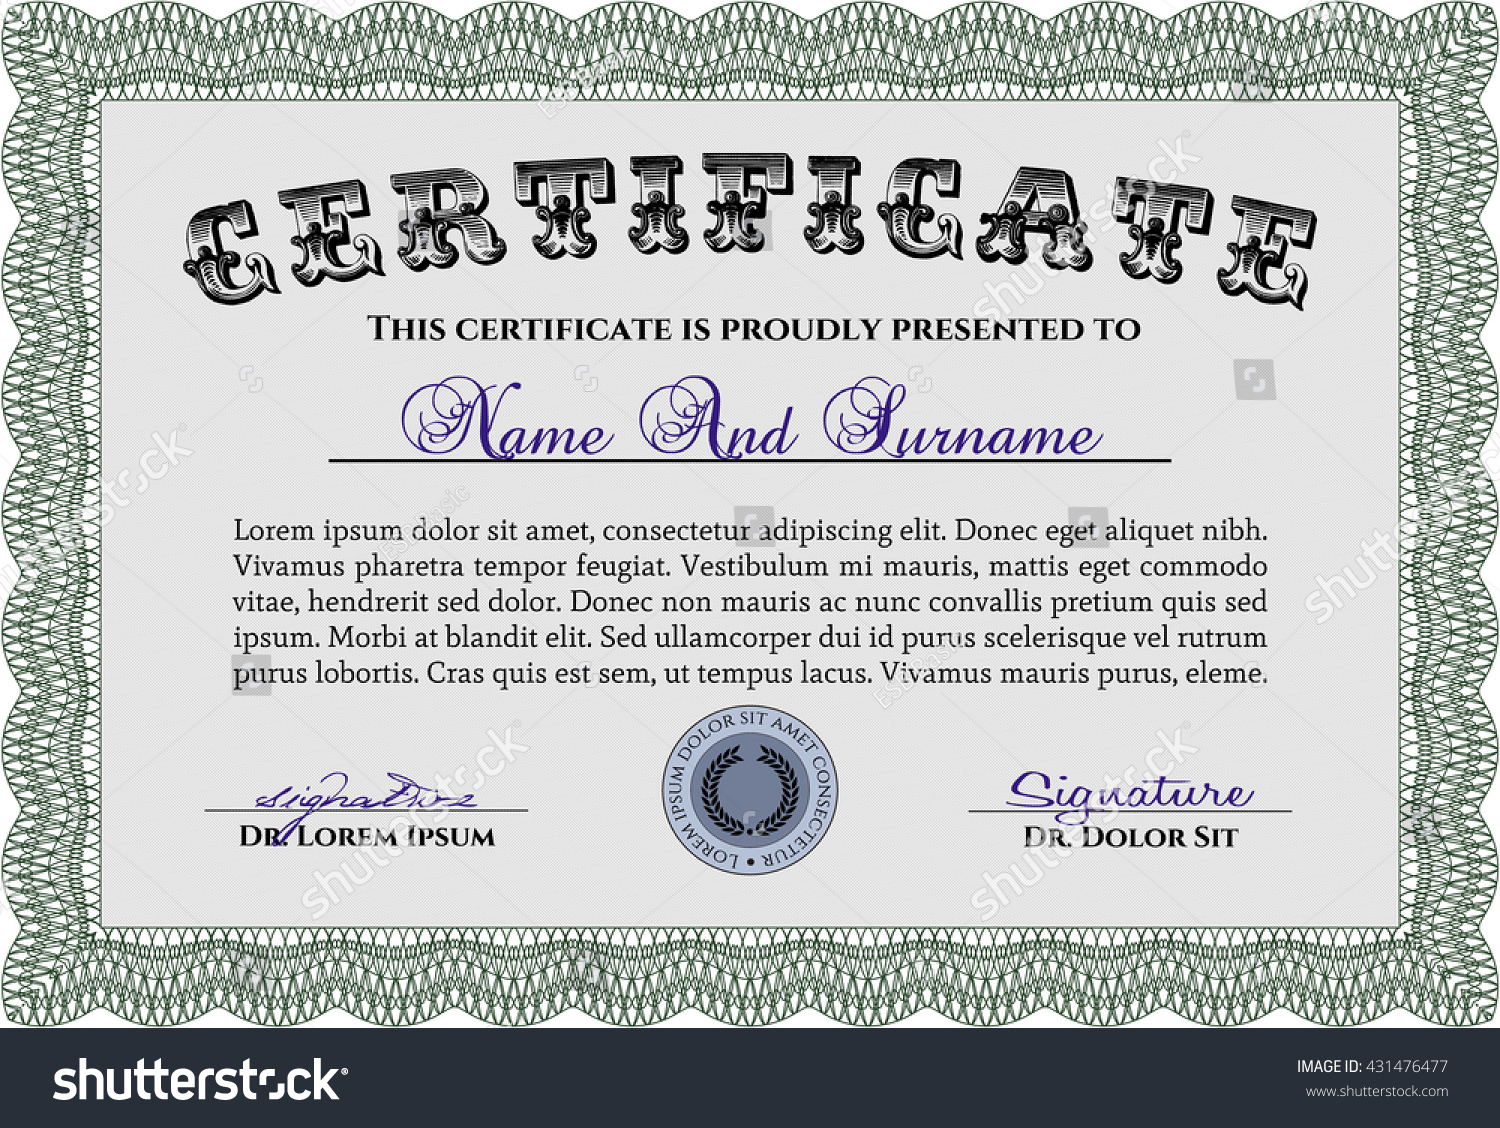 Amazing Quality Assurance Certificate Template Gallery - Examples ...